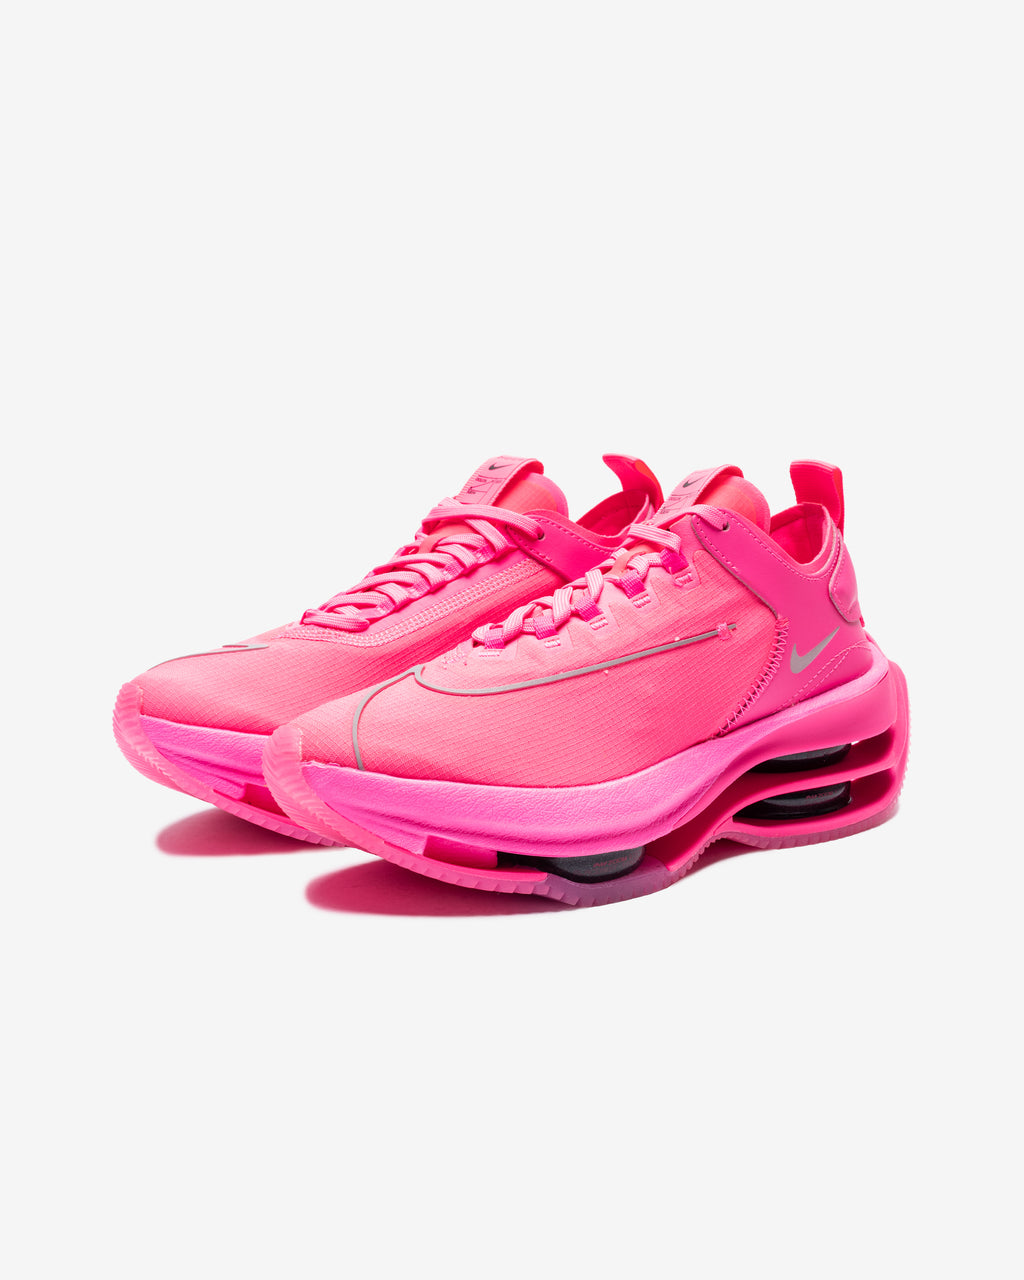 WOMEN'S ZOOM DOUBLE STACKED - PINKBLAST/ BLACK